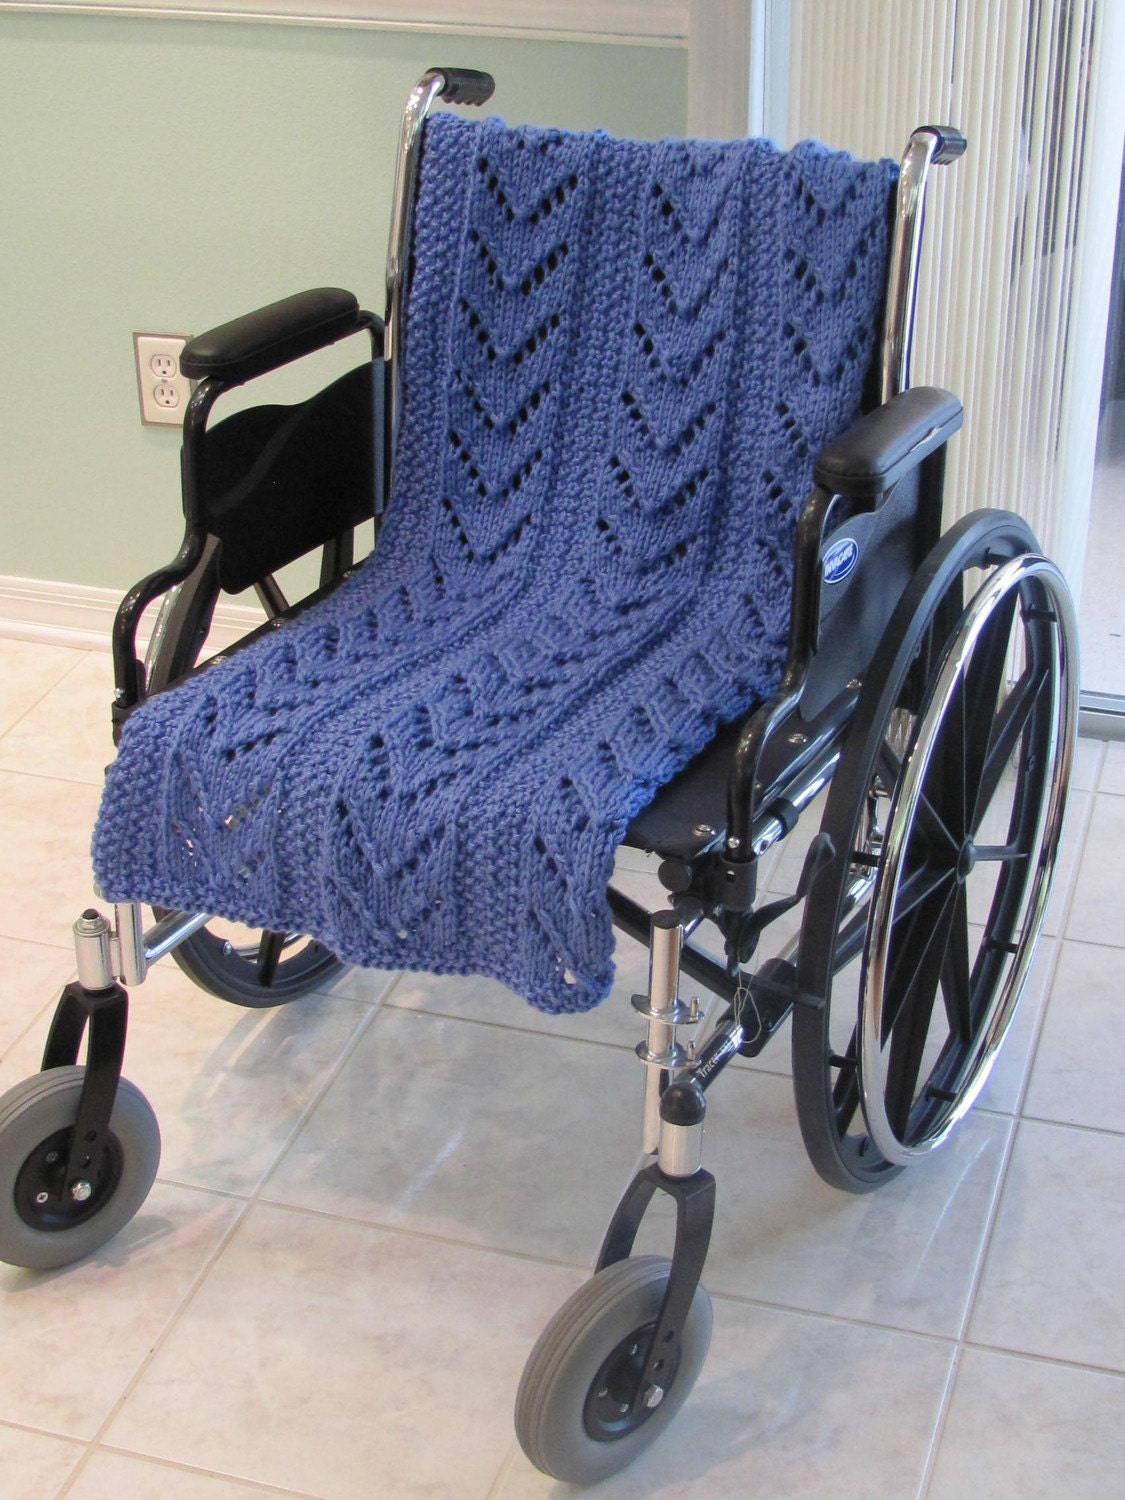 AFGHAN KNIT special needs lap blanket Hand knitted by UptownKnits